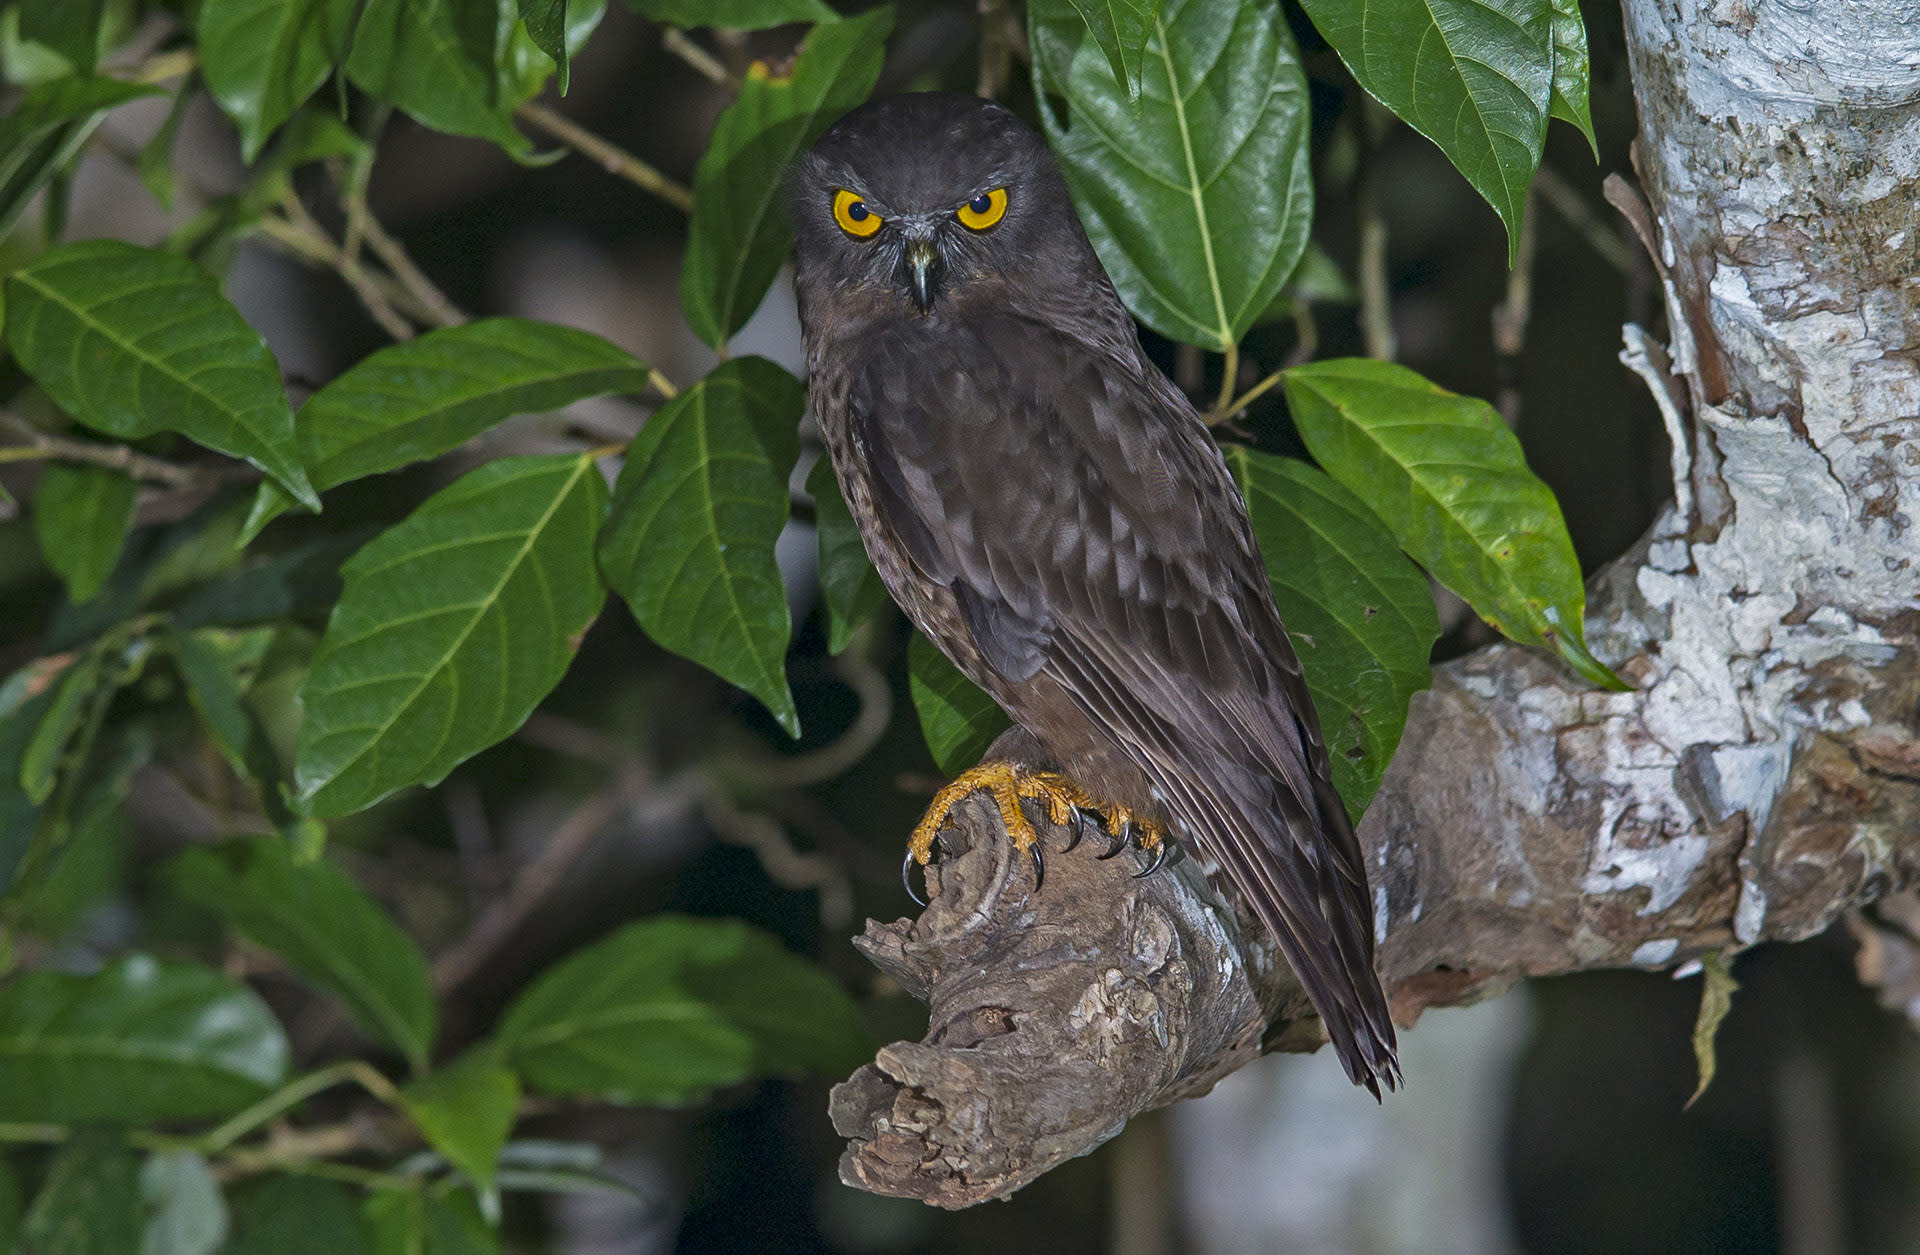 """Hume's hawk-owl (Ninox obscura) is an uncommon species confined only to the Andaman Islands where it is endemic. """"Every possible habitat of the Andamans is occupied by them,"""" says Dalvi. These medium-sized owls with dark brown feathers and golden eyes are very vocal, emitting a distinctly sing-song whoo-oo whoo-oo call."""